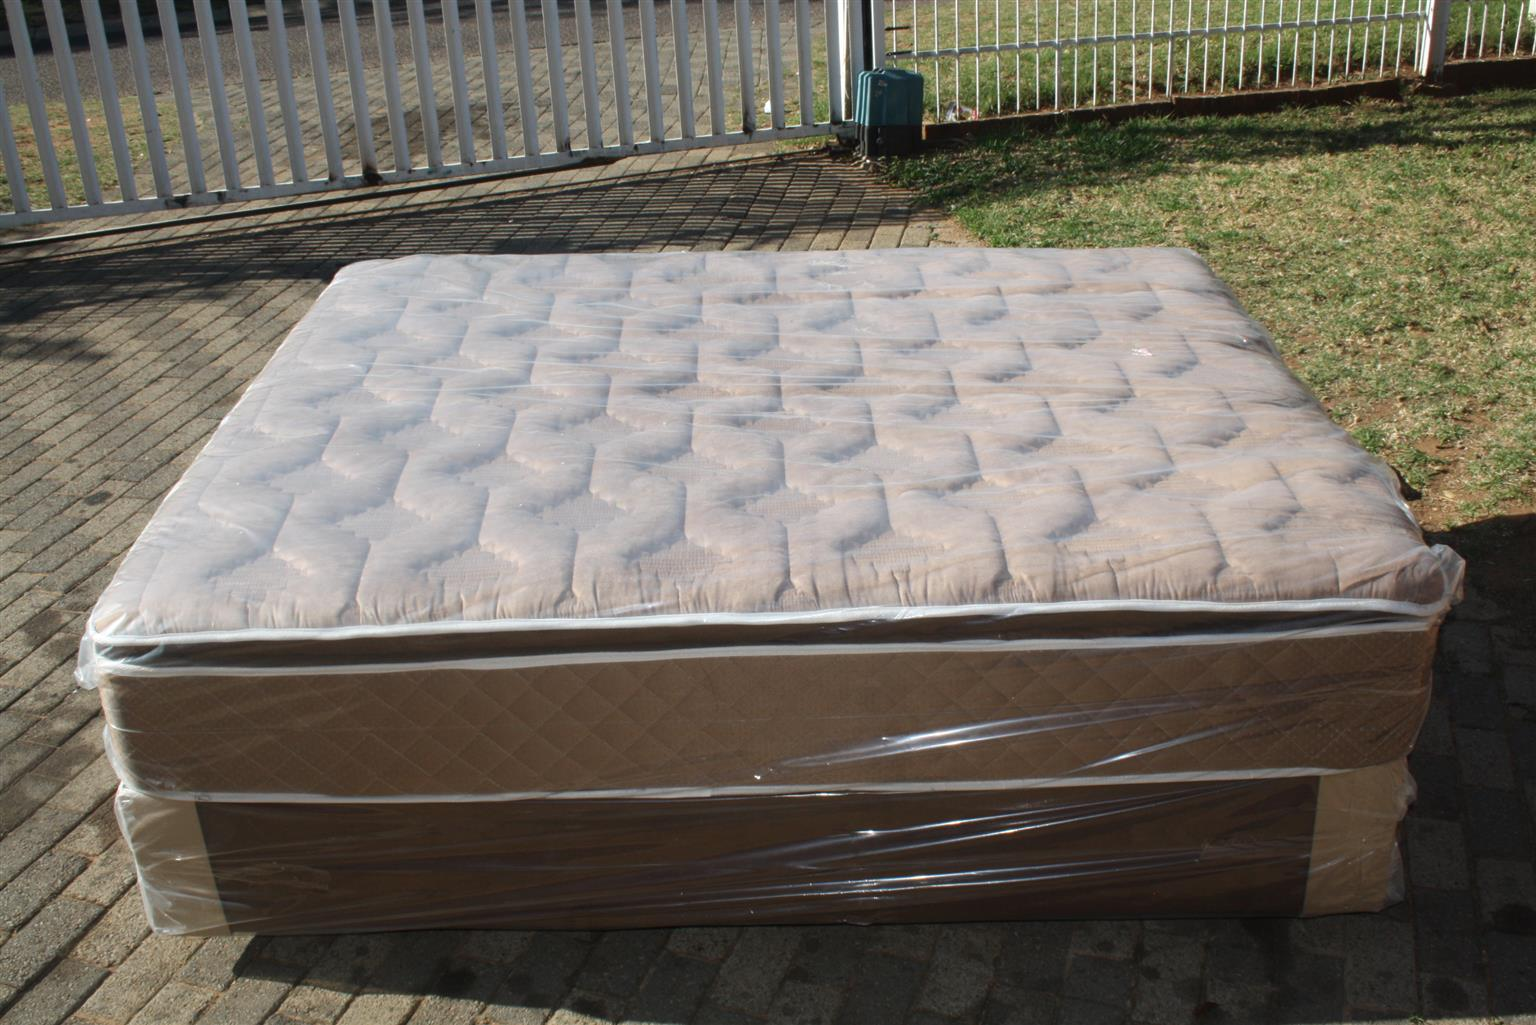 New Queen Size Pillowtop Restonic/Edblo/Sleepmasters/Comfy Max/Sealy Beds from R3300